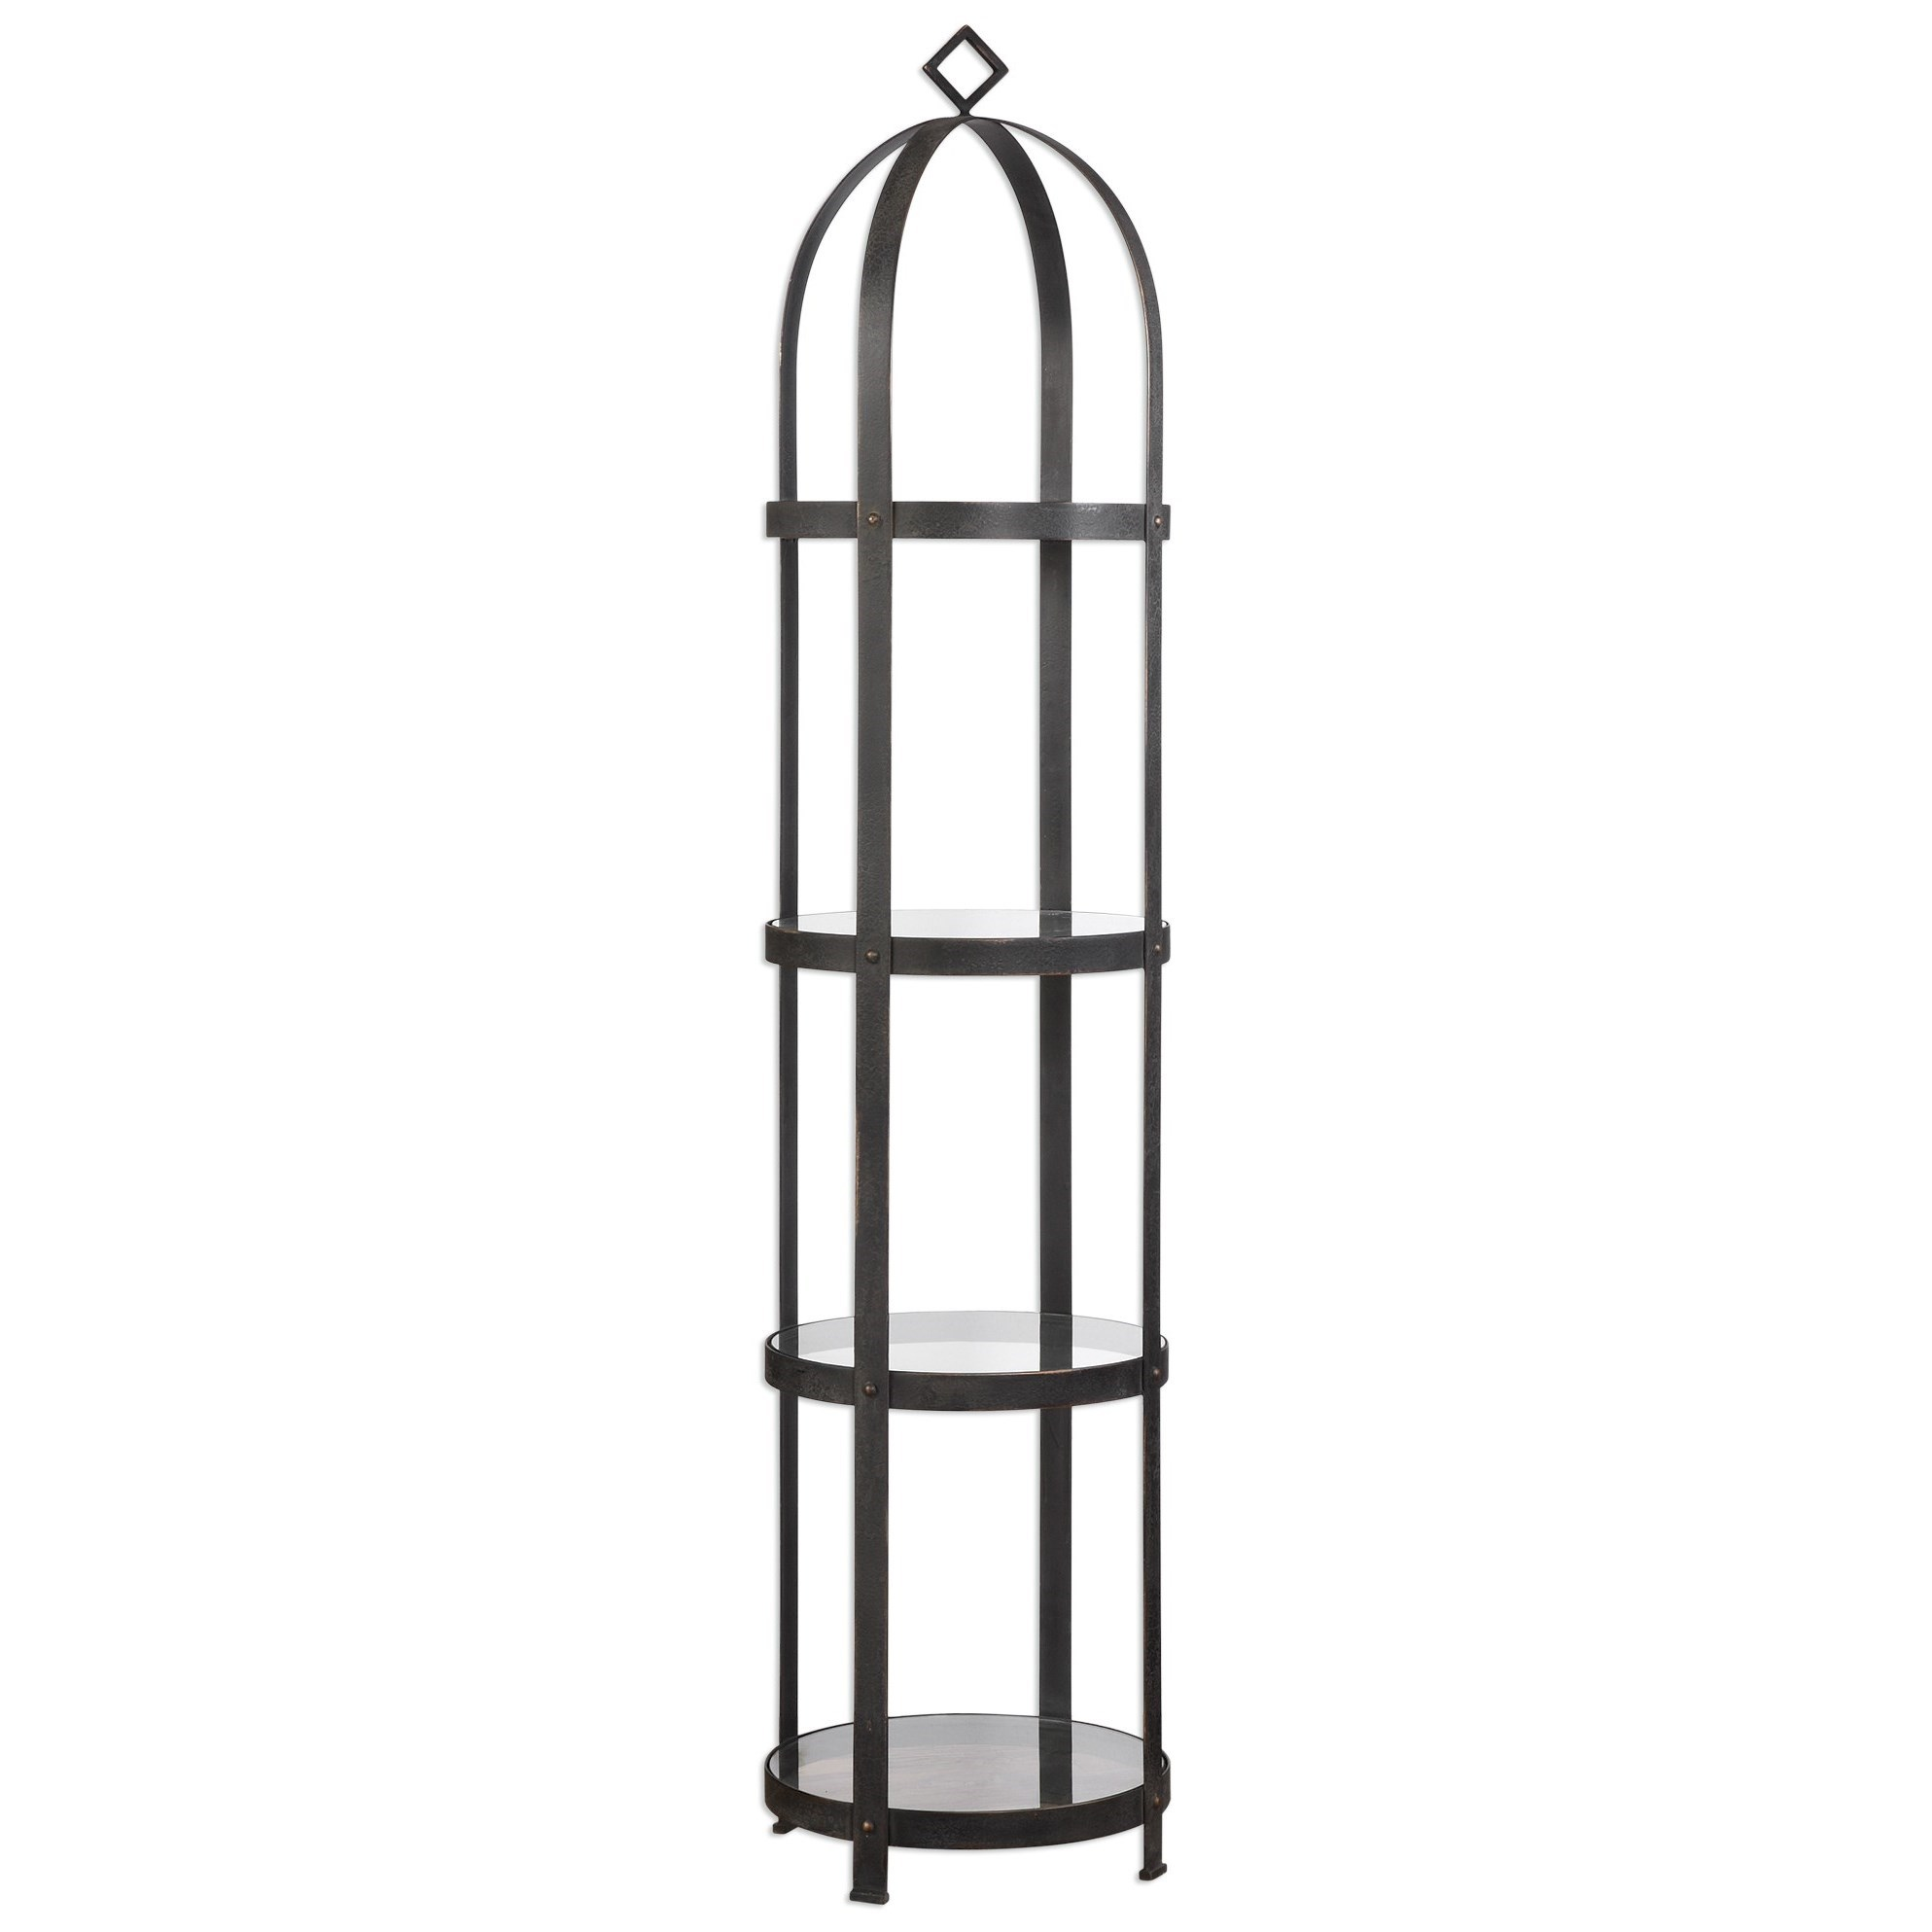 Accent Furniture - Bookcases Welch Etagere by Uttermost at Del Sol Furniture